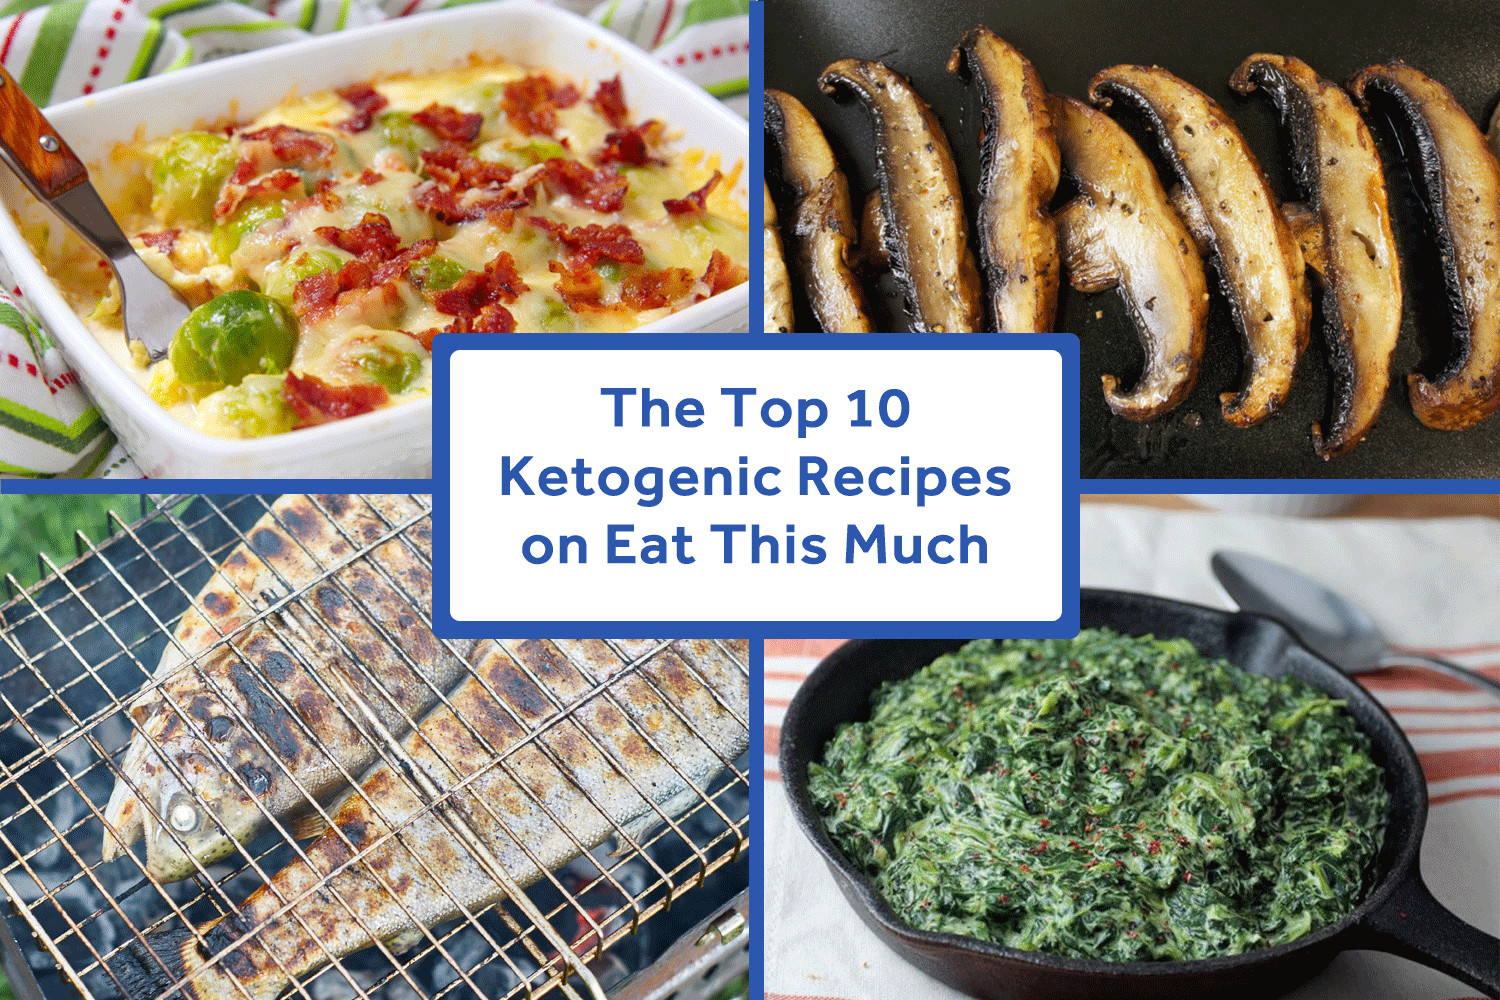 Keto Diet Recipes Free  The Top 10 Ketogenic Recipes on Eat This Much